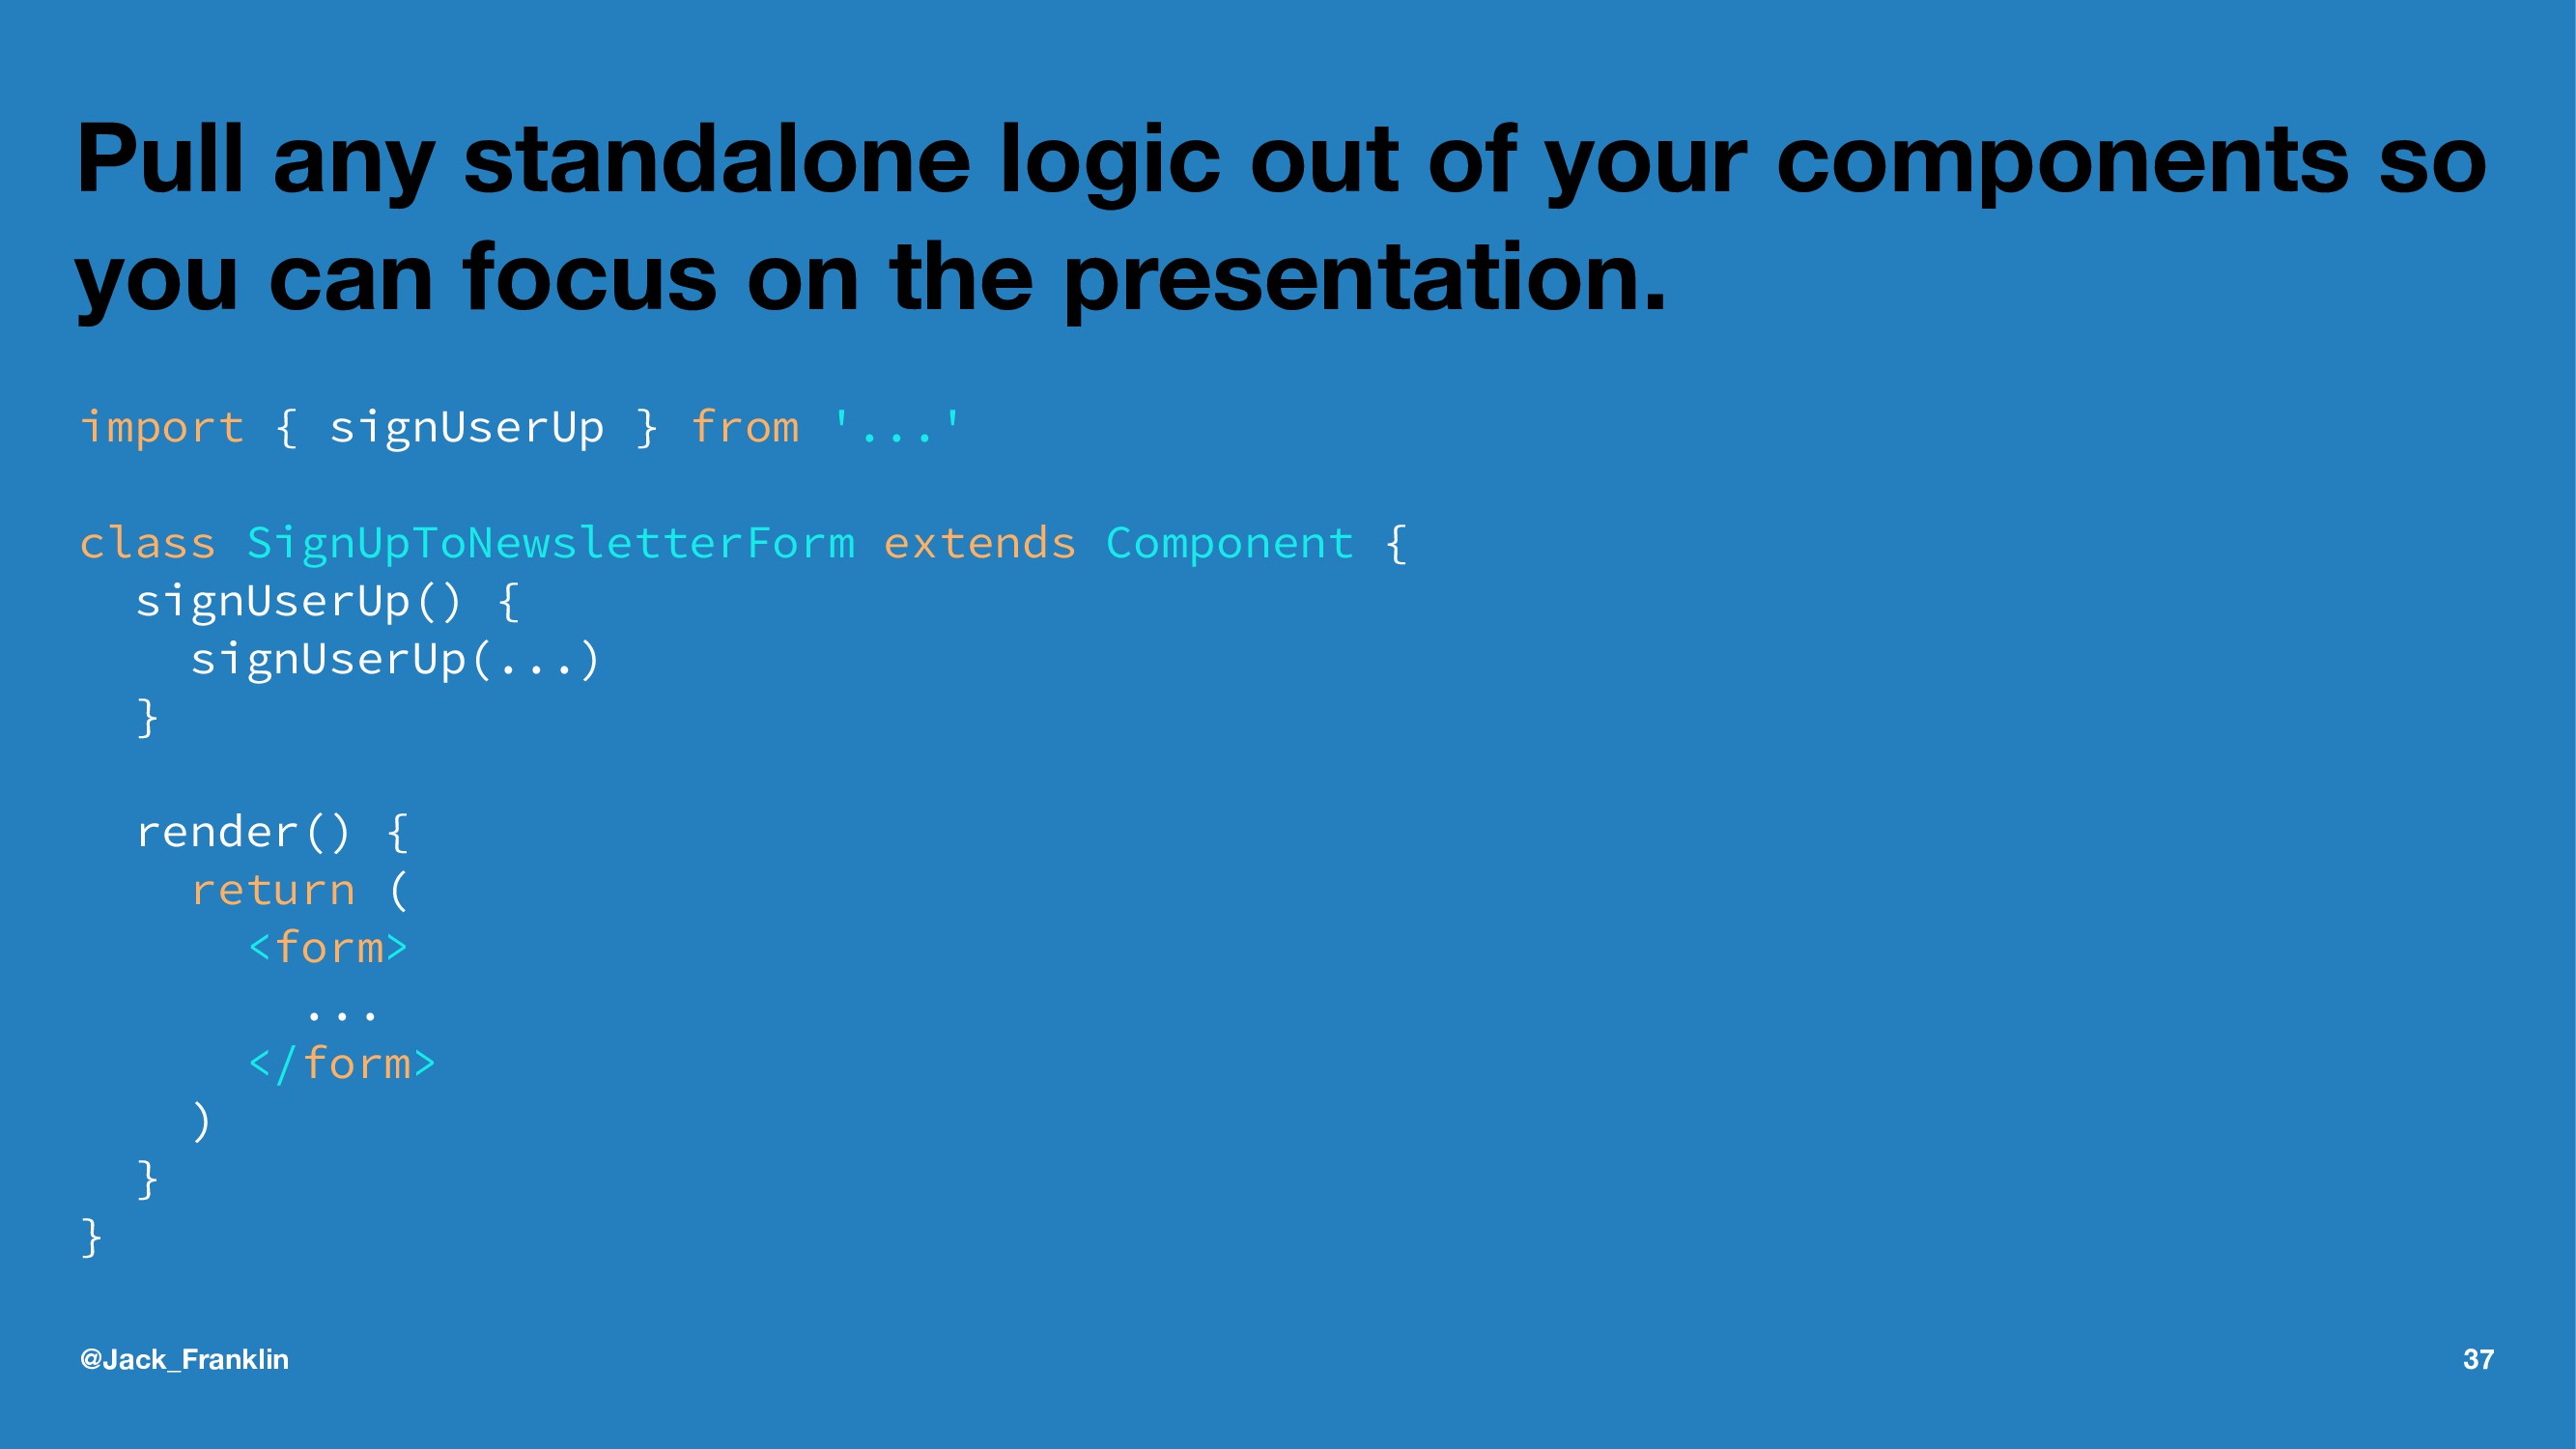 Pull any standalone logic out of your component...